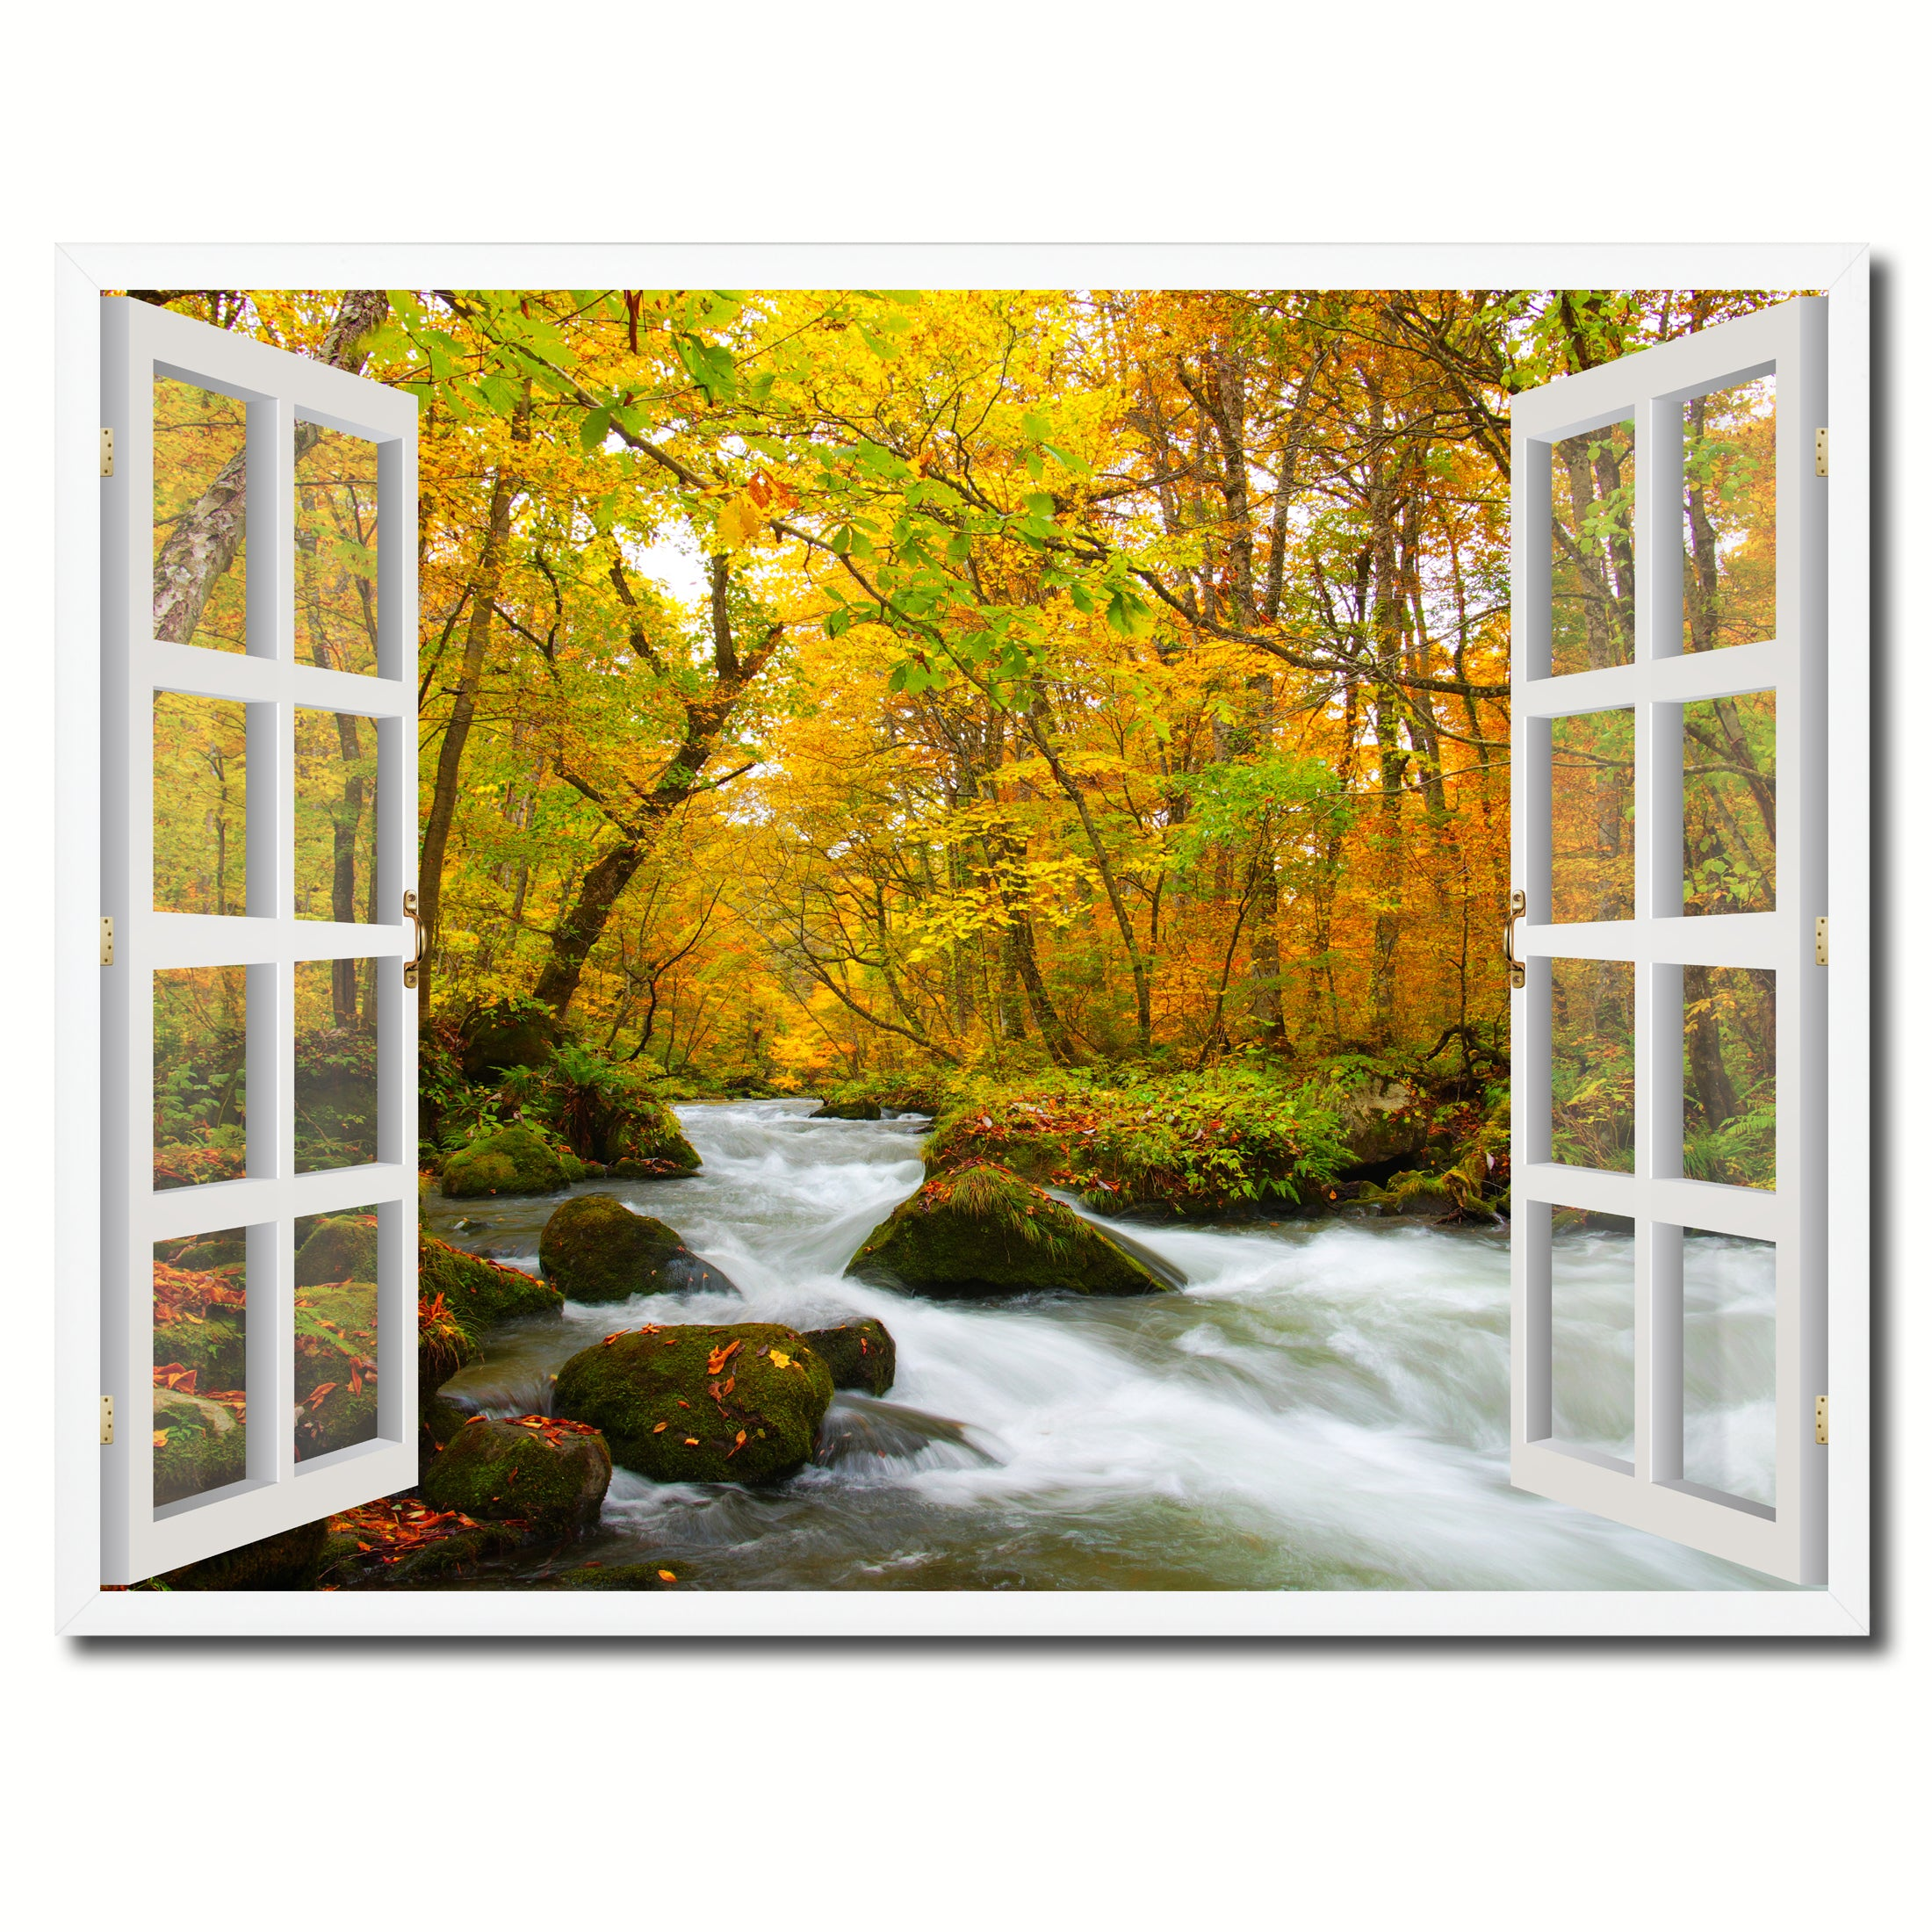 Autumn River Picture French Window Framed Canvas Print Home Decor Wall Art Collection